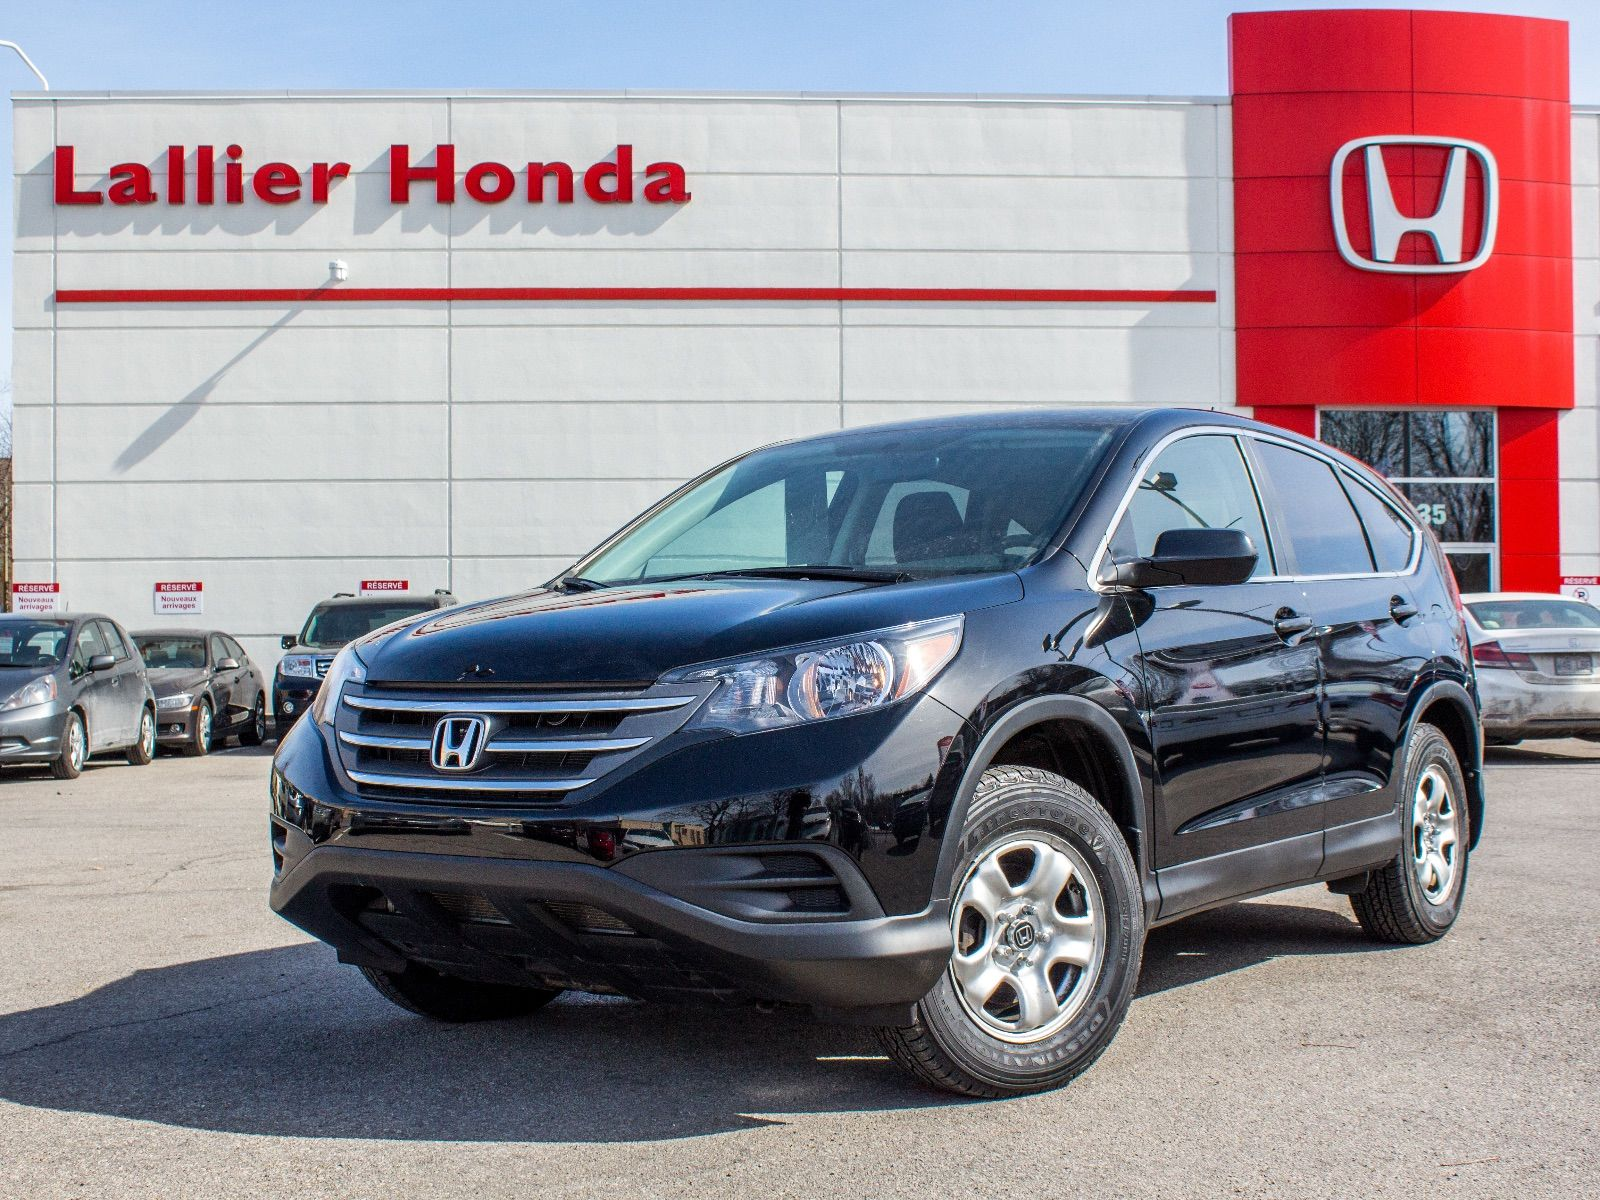 Pre owned 2013 honda cr v lx awd lallier honda montreal in for Honda financial services payment login